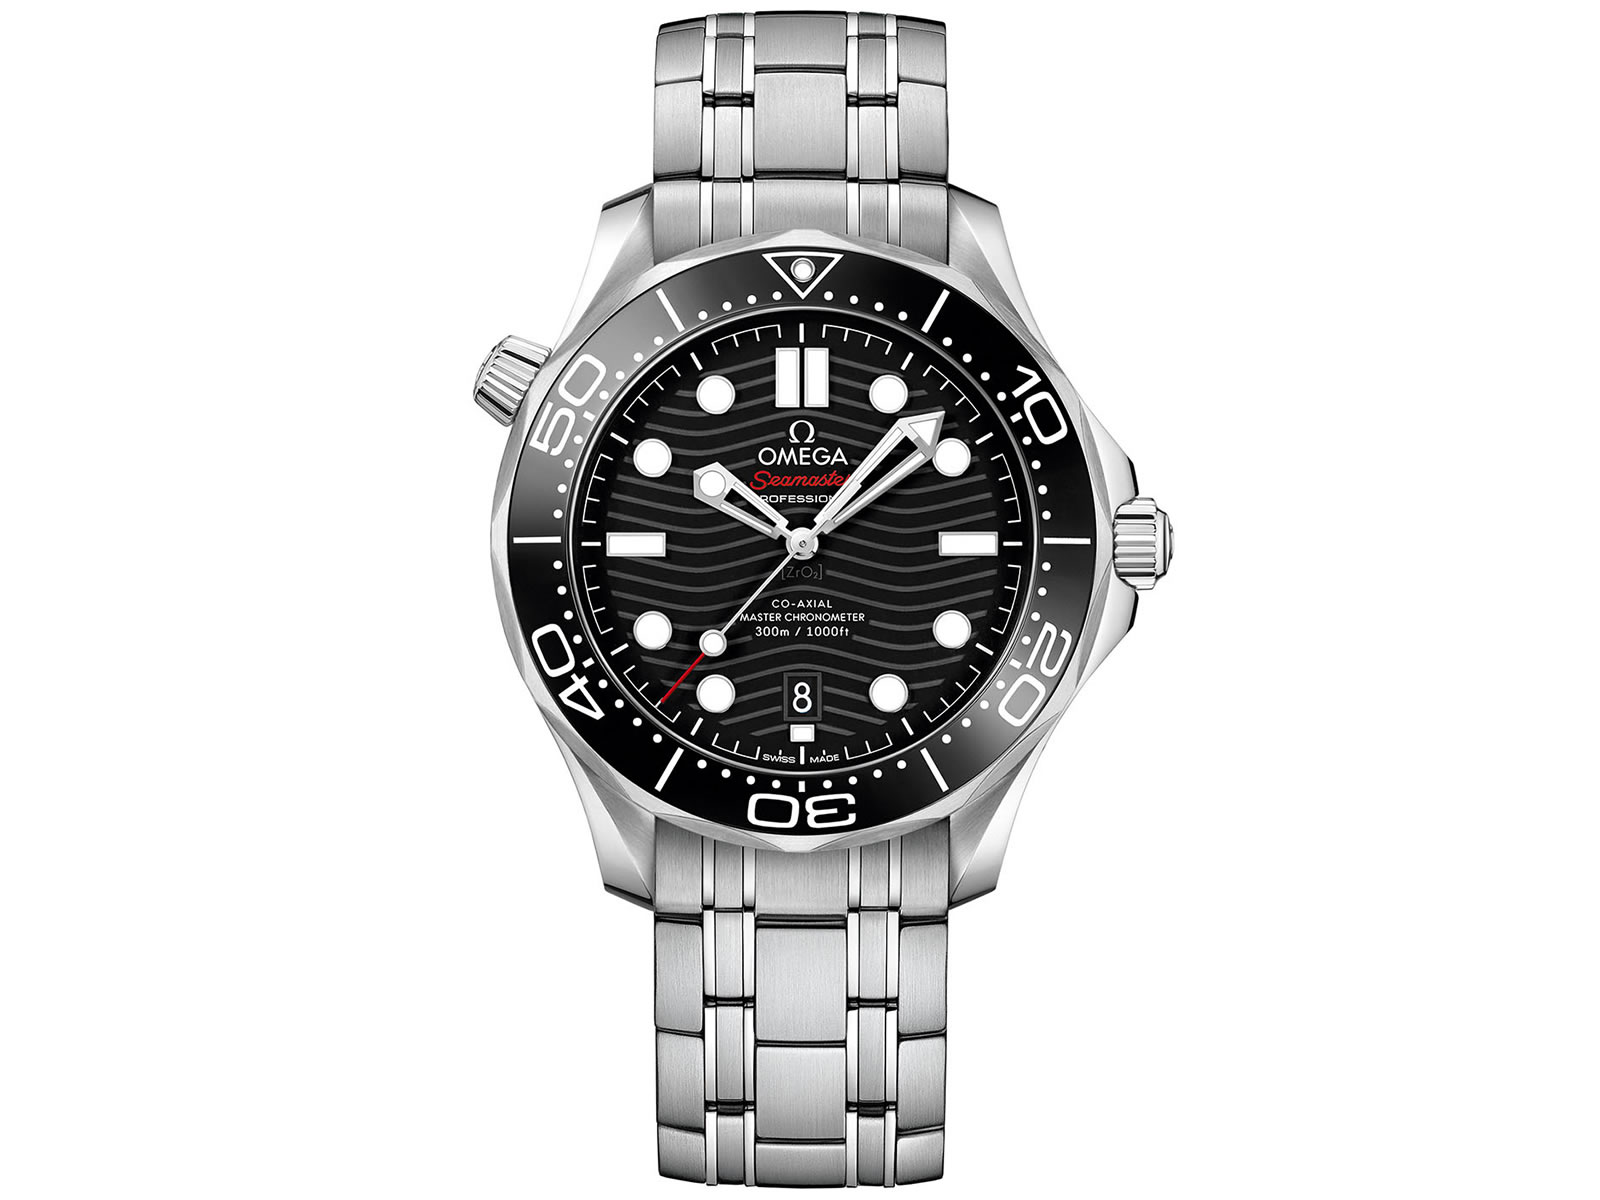 210-30-42-20-01-001-omega-seamaster-diver-300m-collection-5-.jpg